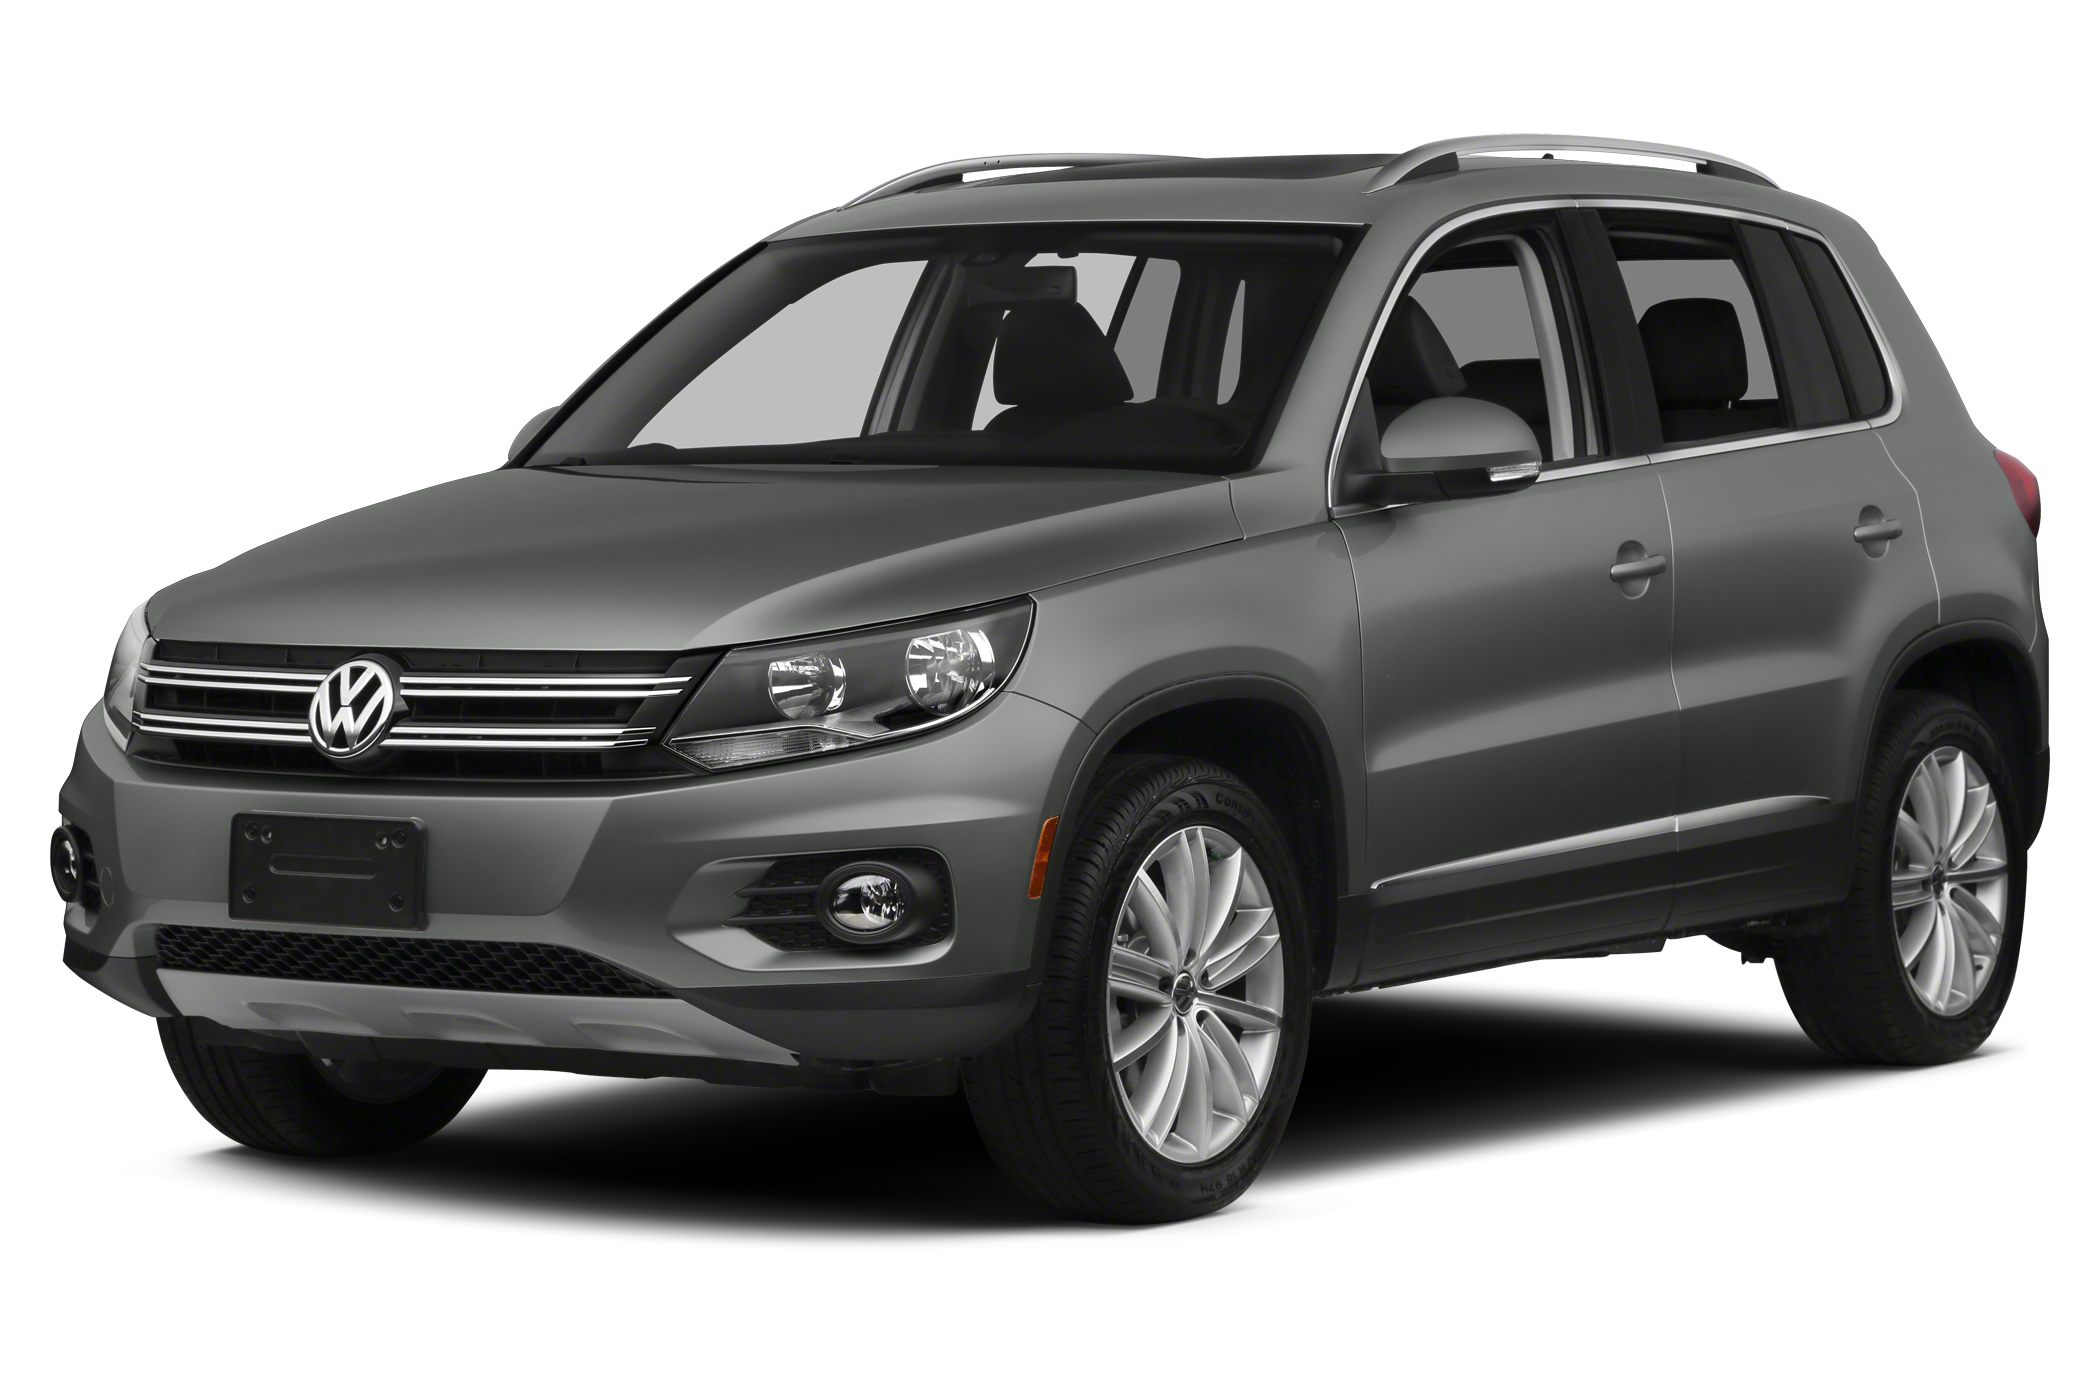 2015 Volkswagen Tiguan SEL SUV for sale in Littleton for $36,665 with 12 miles.